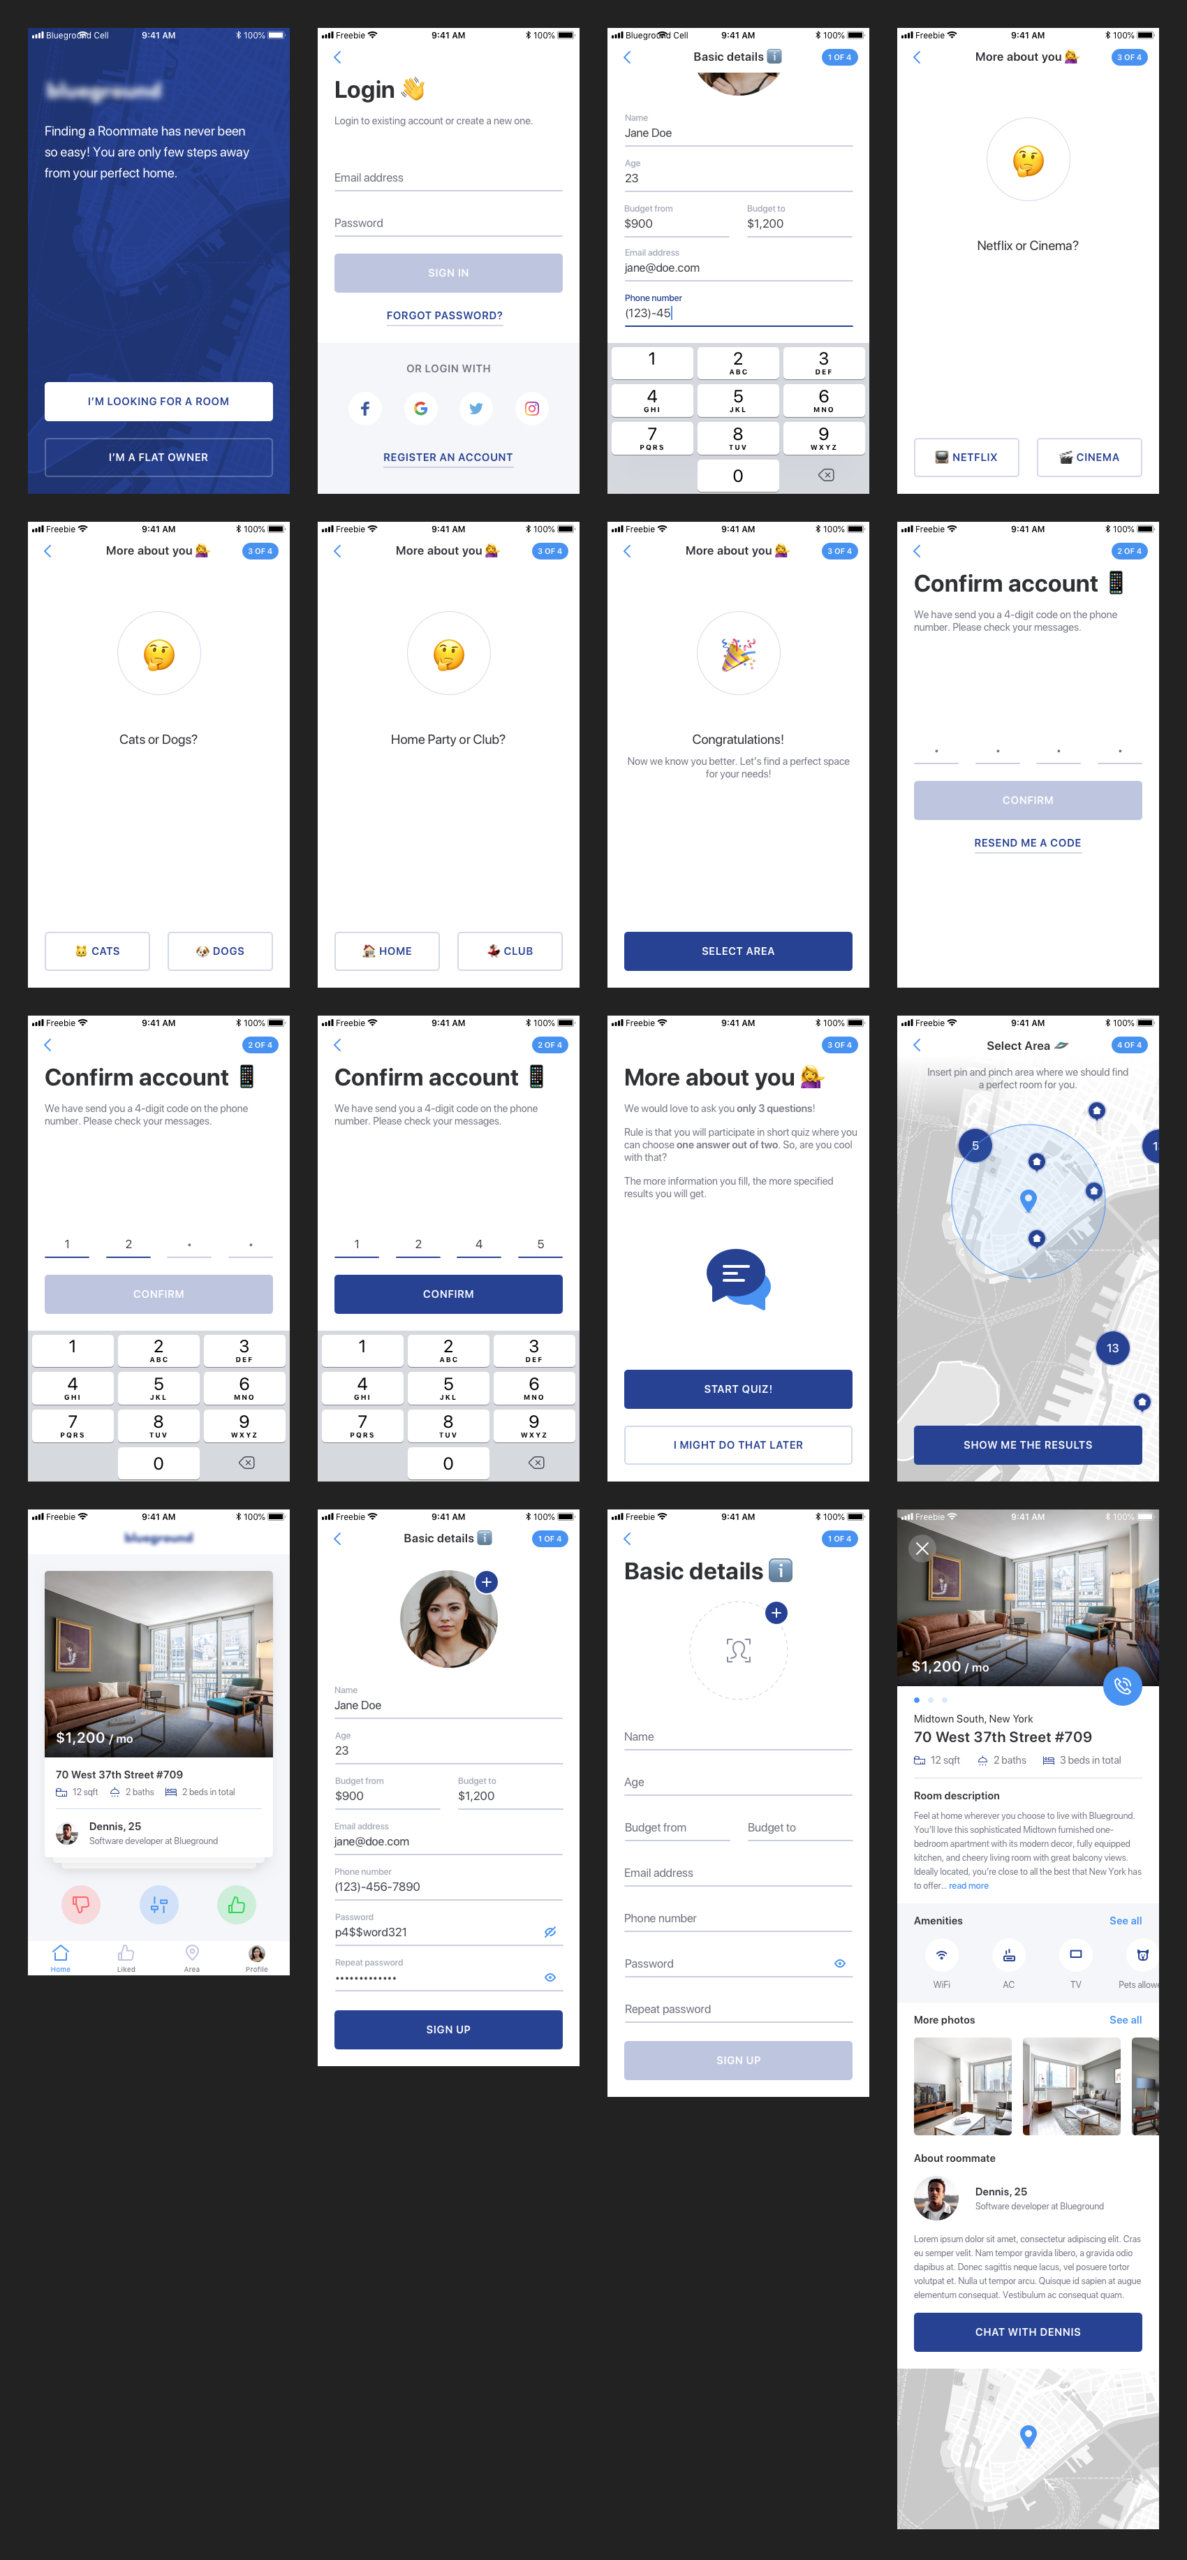 Find a Roommate Free UI Kit for Sketch from UIGarage